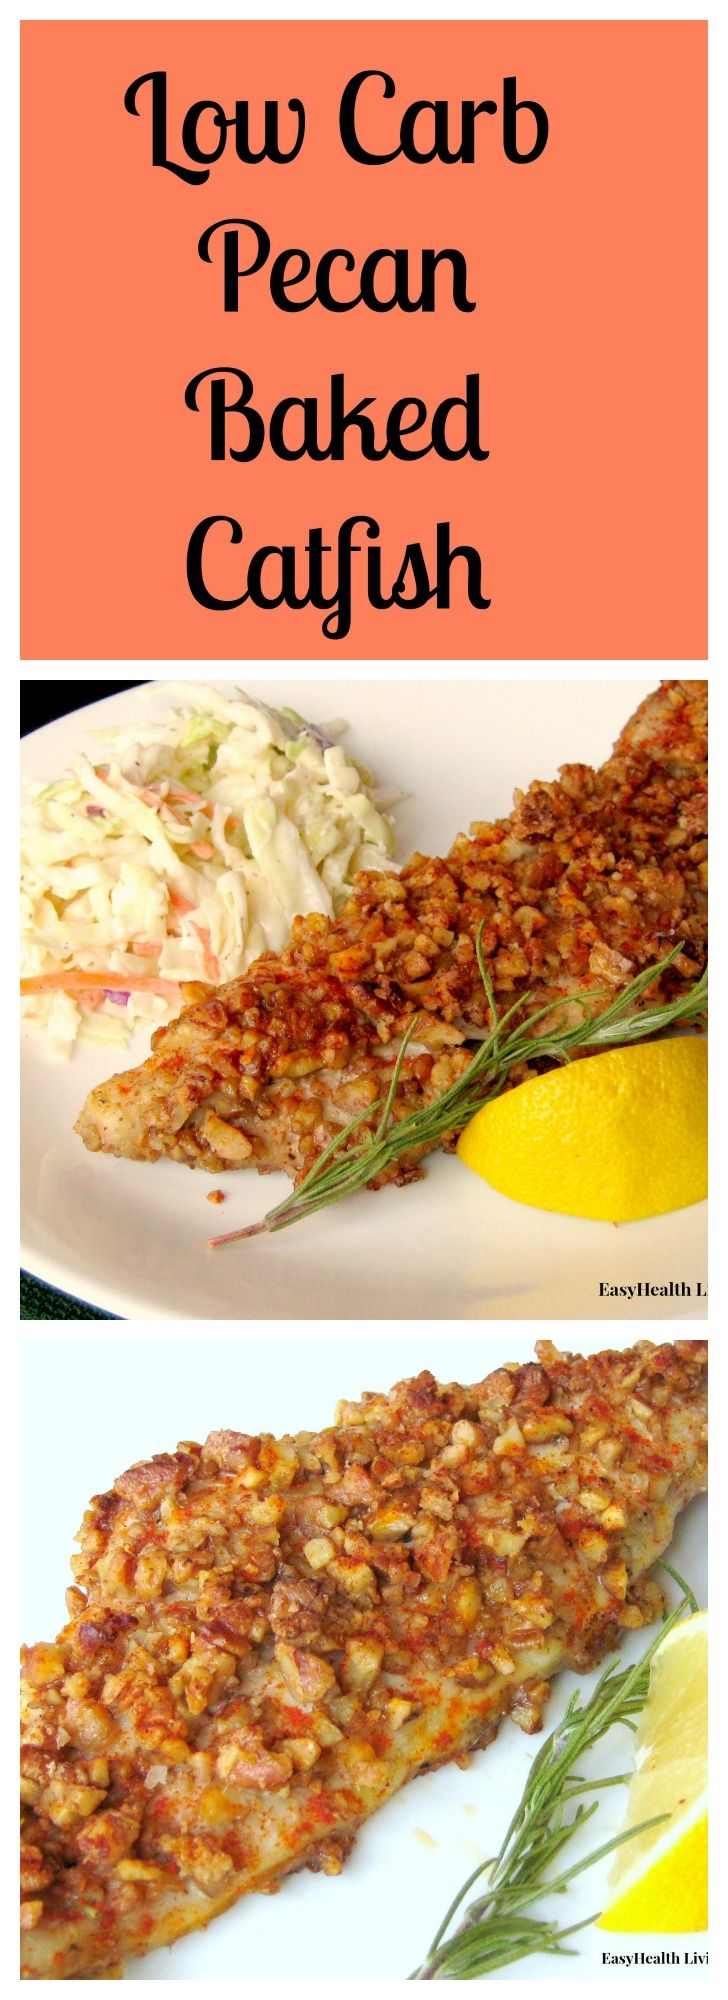 """This baked catfish is one of those recipes that tastes decadent, yet it's packed with lots of nutrients. You could experiment with using other nuts such as almonds or macadamia nuts in place of the pecans for variety. The pinch of rosemary gives this recipe a delicious, """"gourmet"""" flavor. I added a side of…"""